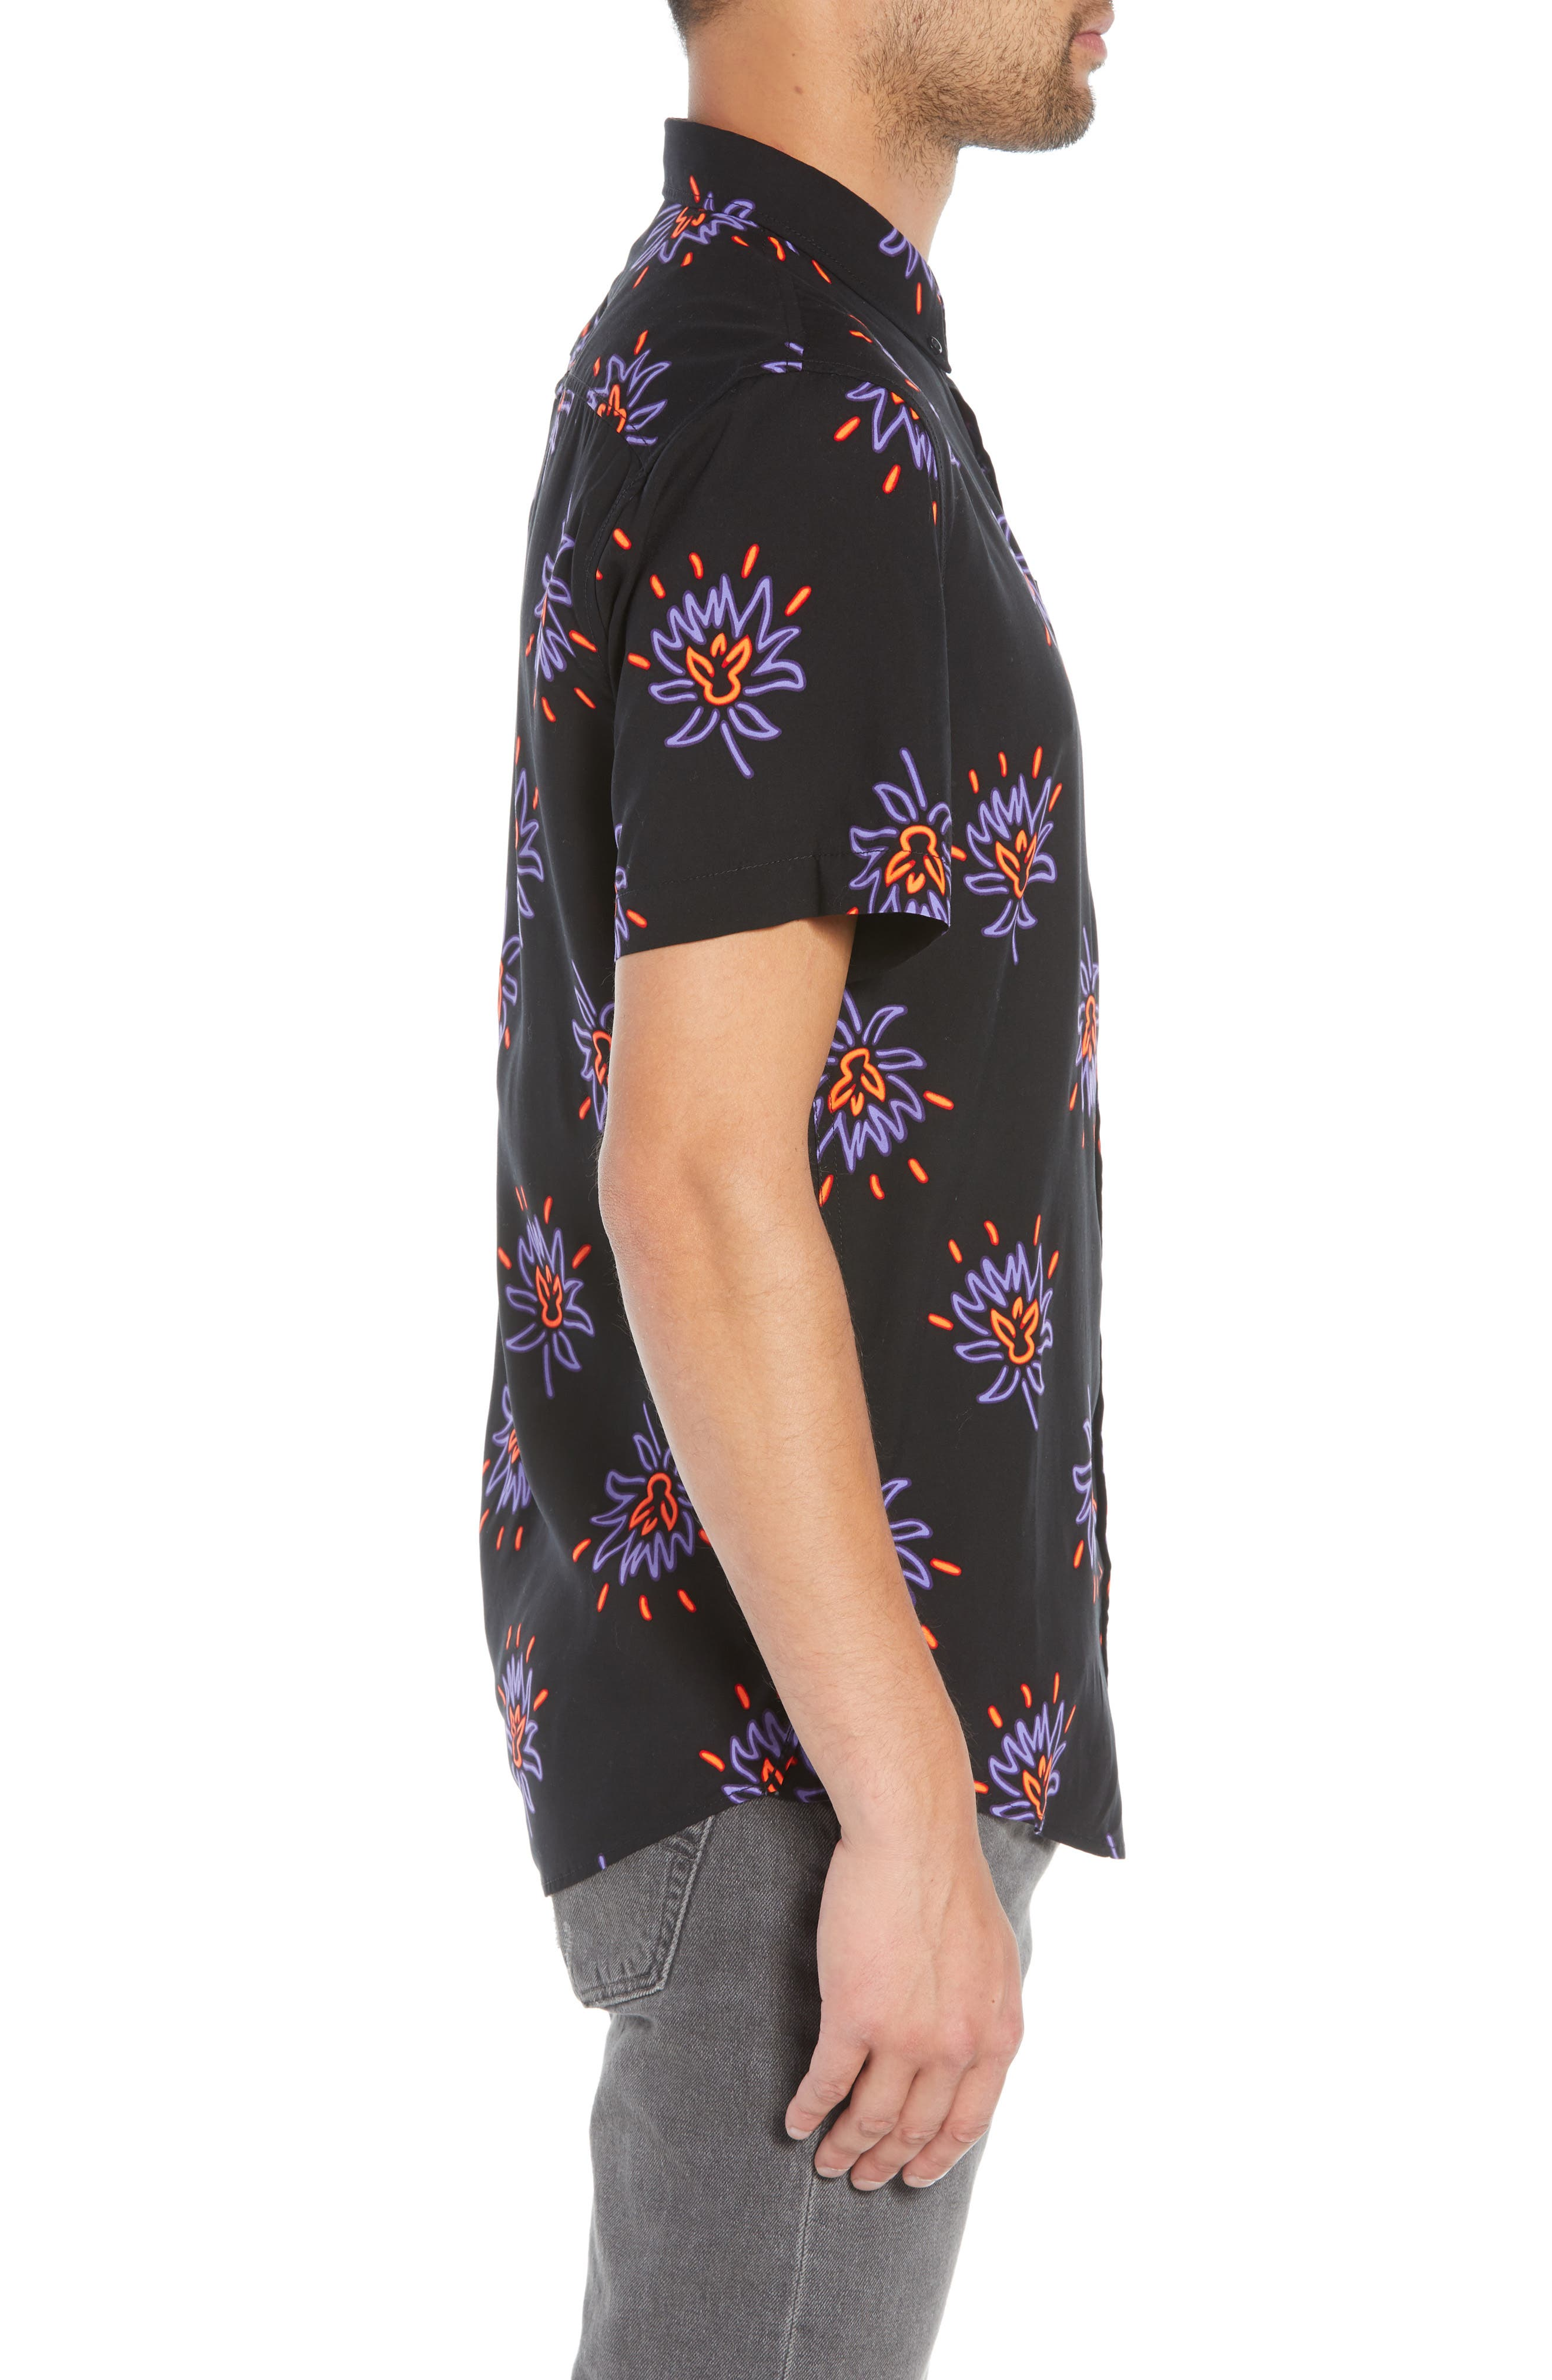 Neon Flower Print Woven Shirt,                             Alternate thumbnail 3, color,                             BLACK PURPLE NEON FLORAL